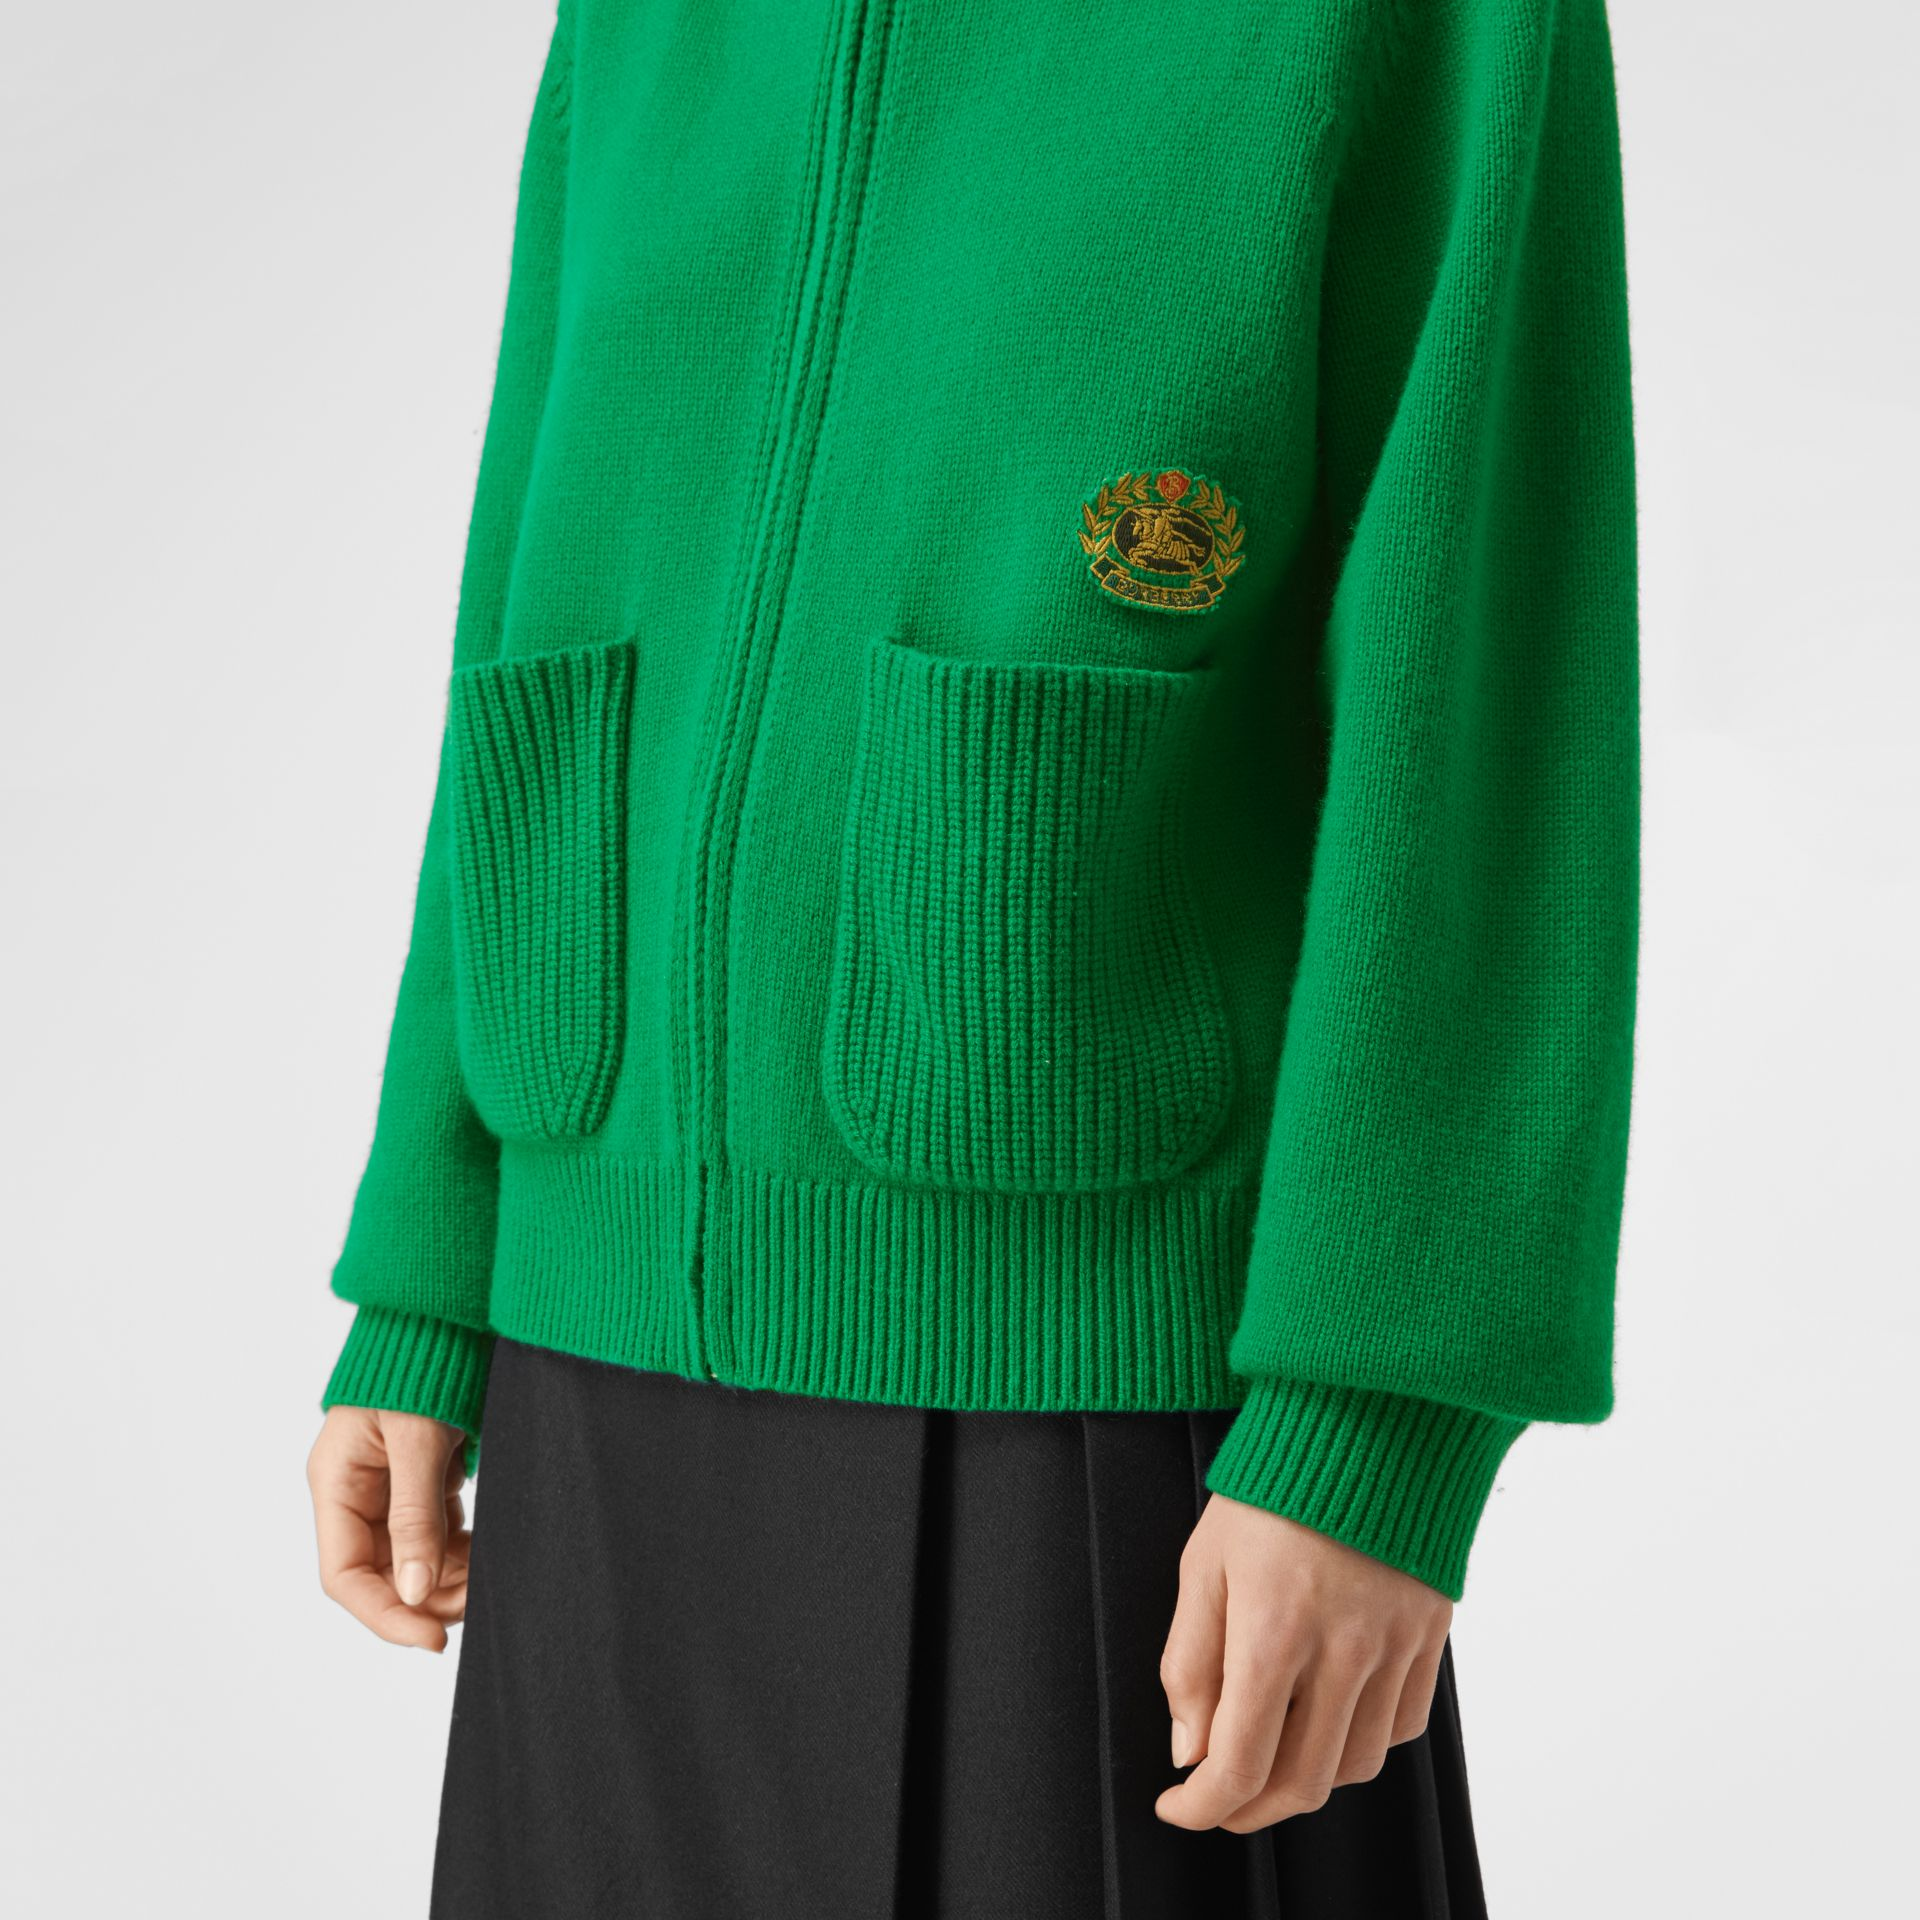 Embroidered Crest Cashmere Hooded Top in Vibrant Green - Women | Burberry - gallery image 1